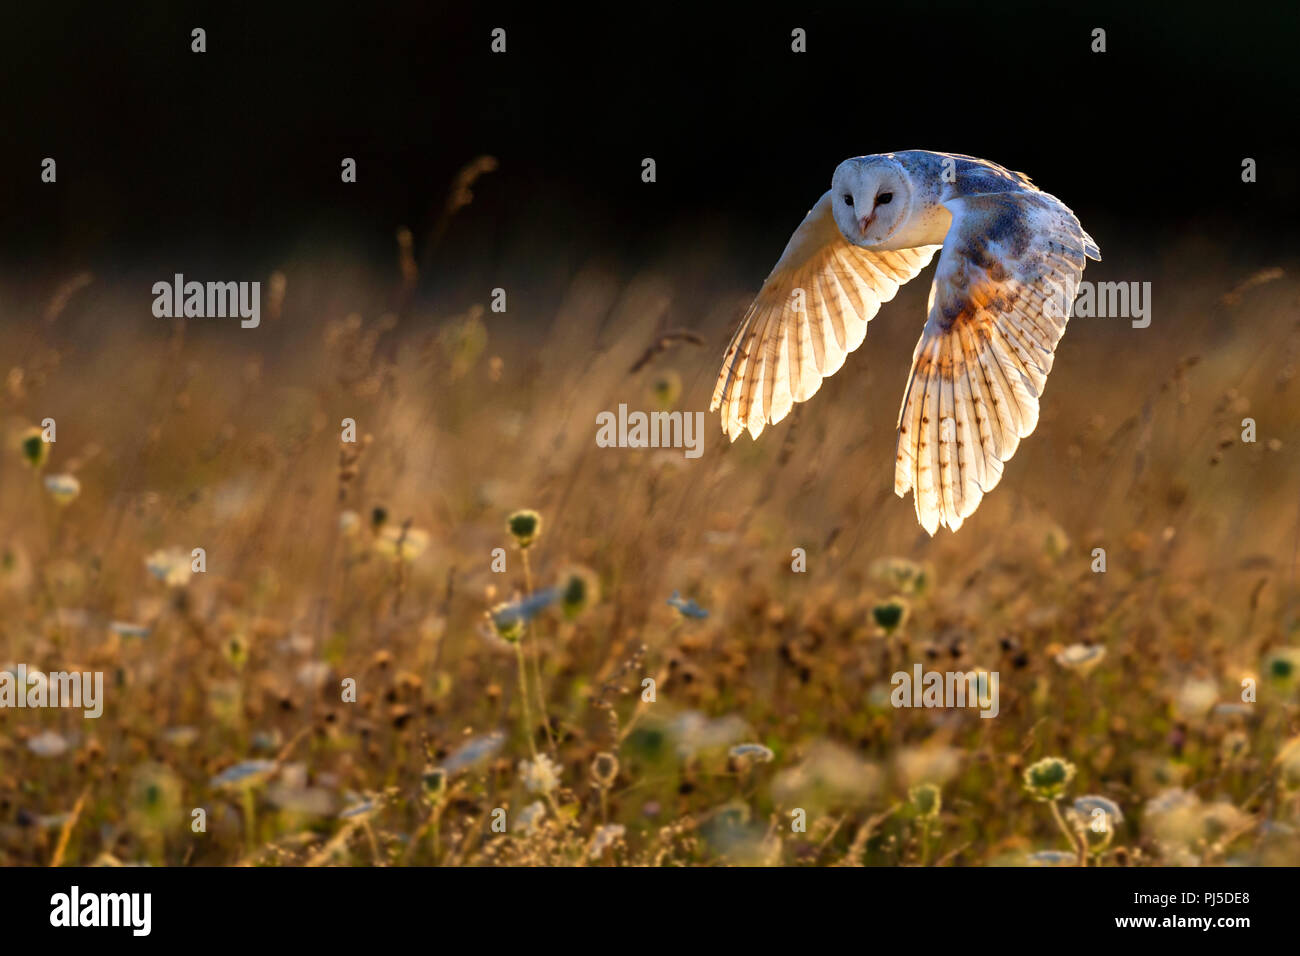 Barn owl in flight backlit by early evening sunlight - Stock Image